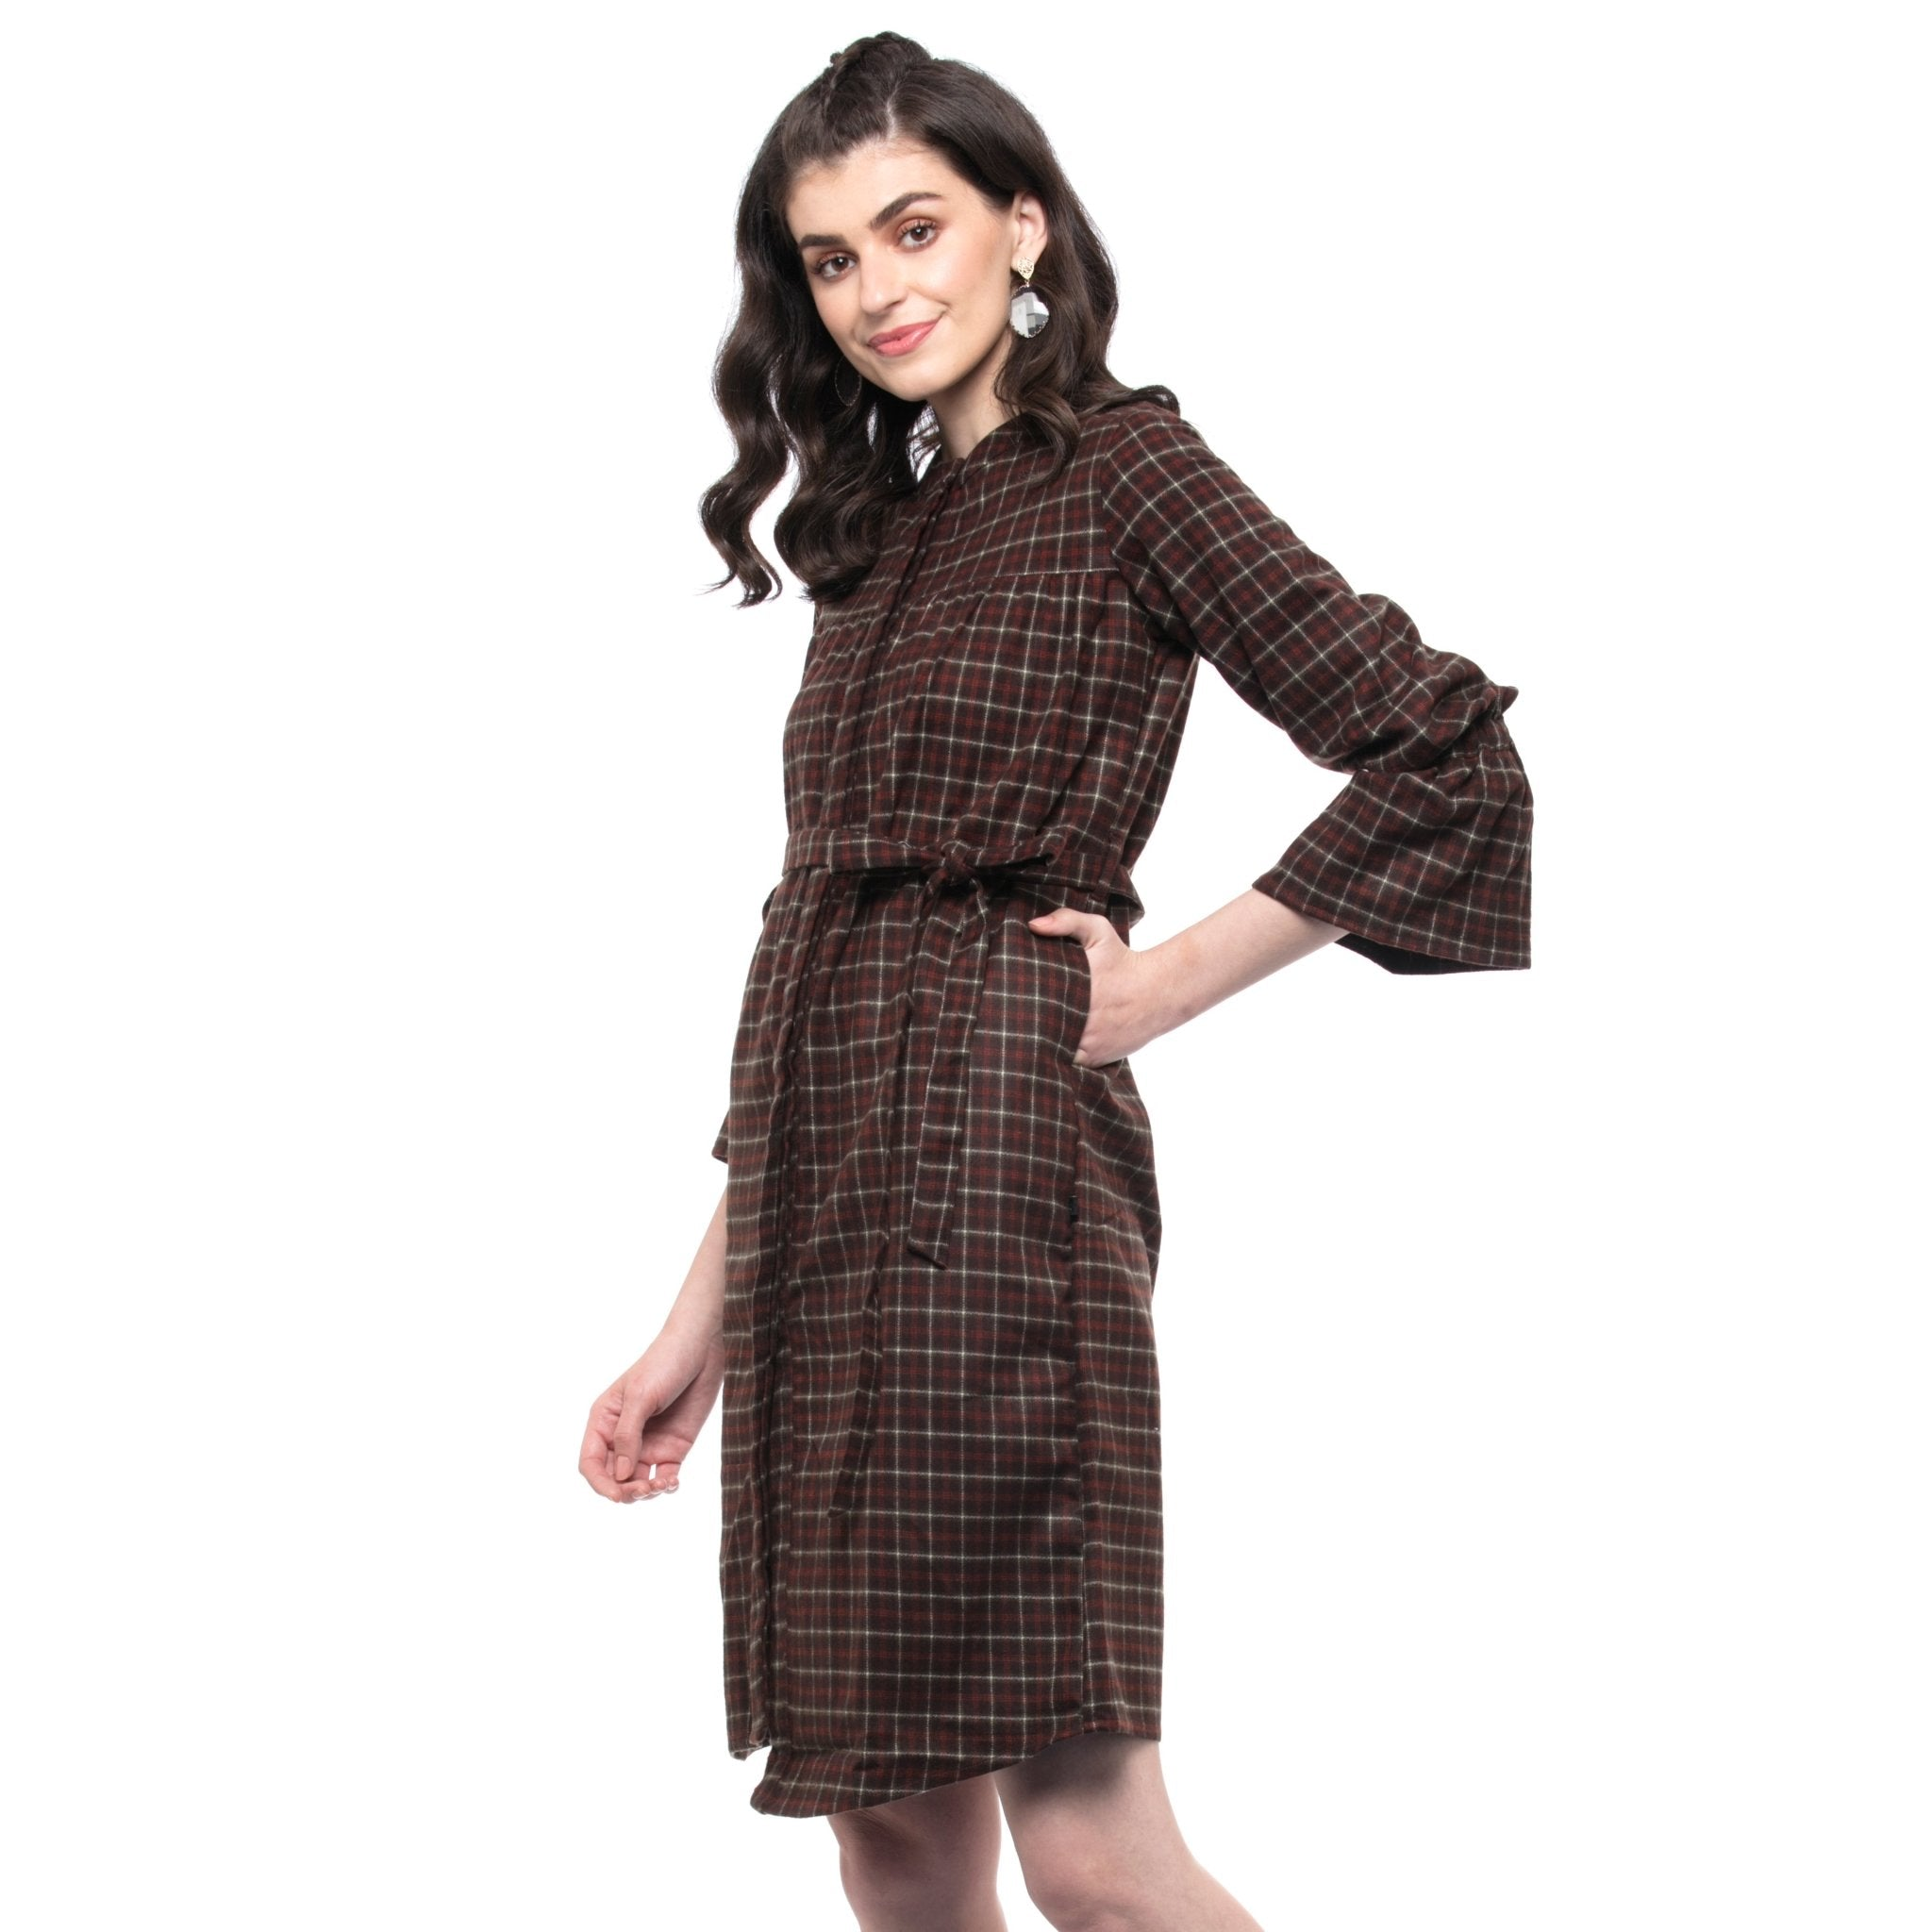 ORANGE CHECK FLANNEL DRESS WITH BELT - ZOMO